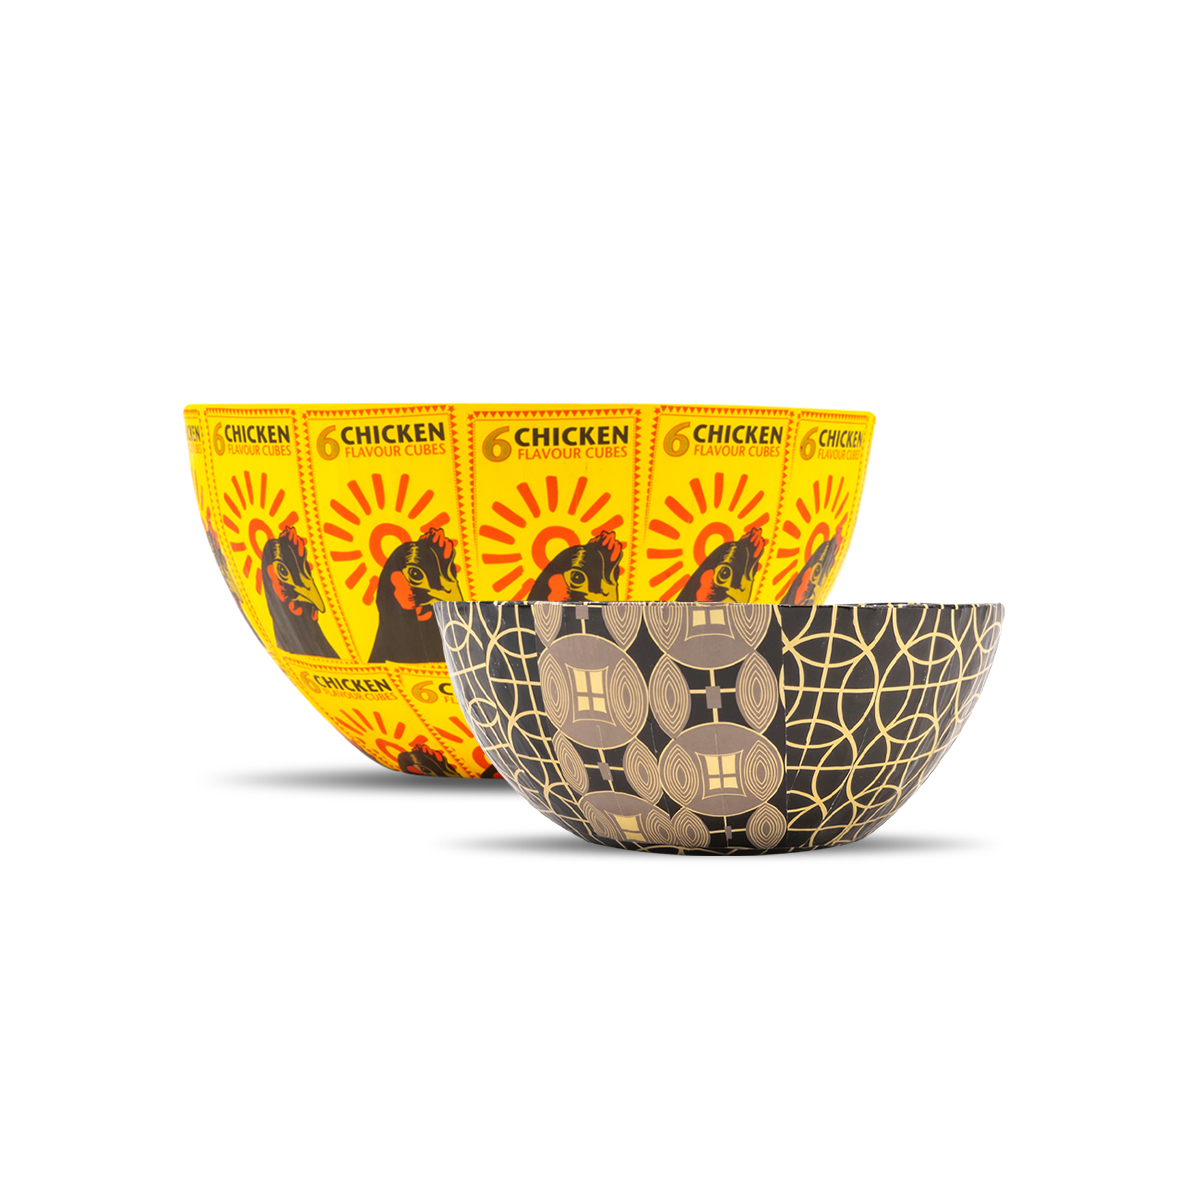 Wola Nani, South Africa: Nesting Paper Maché Bowls – Chicken